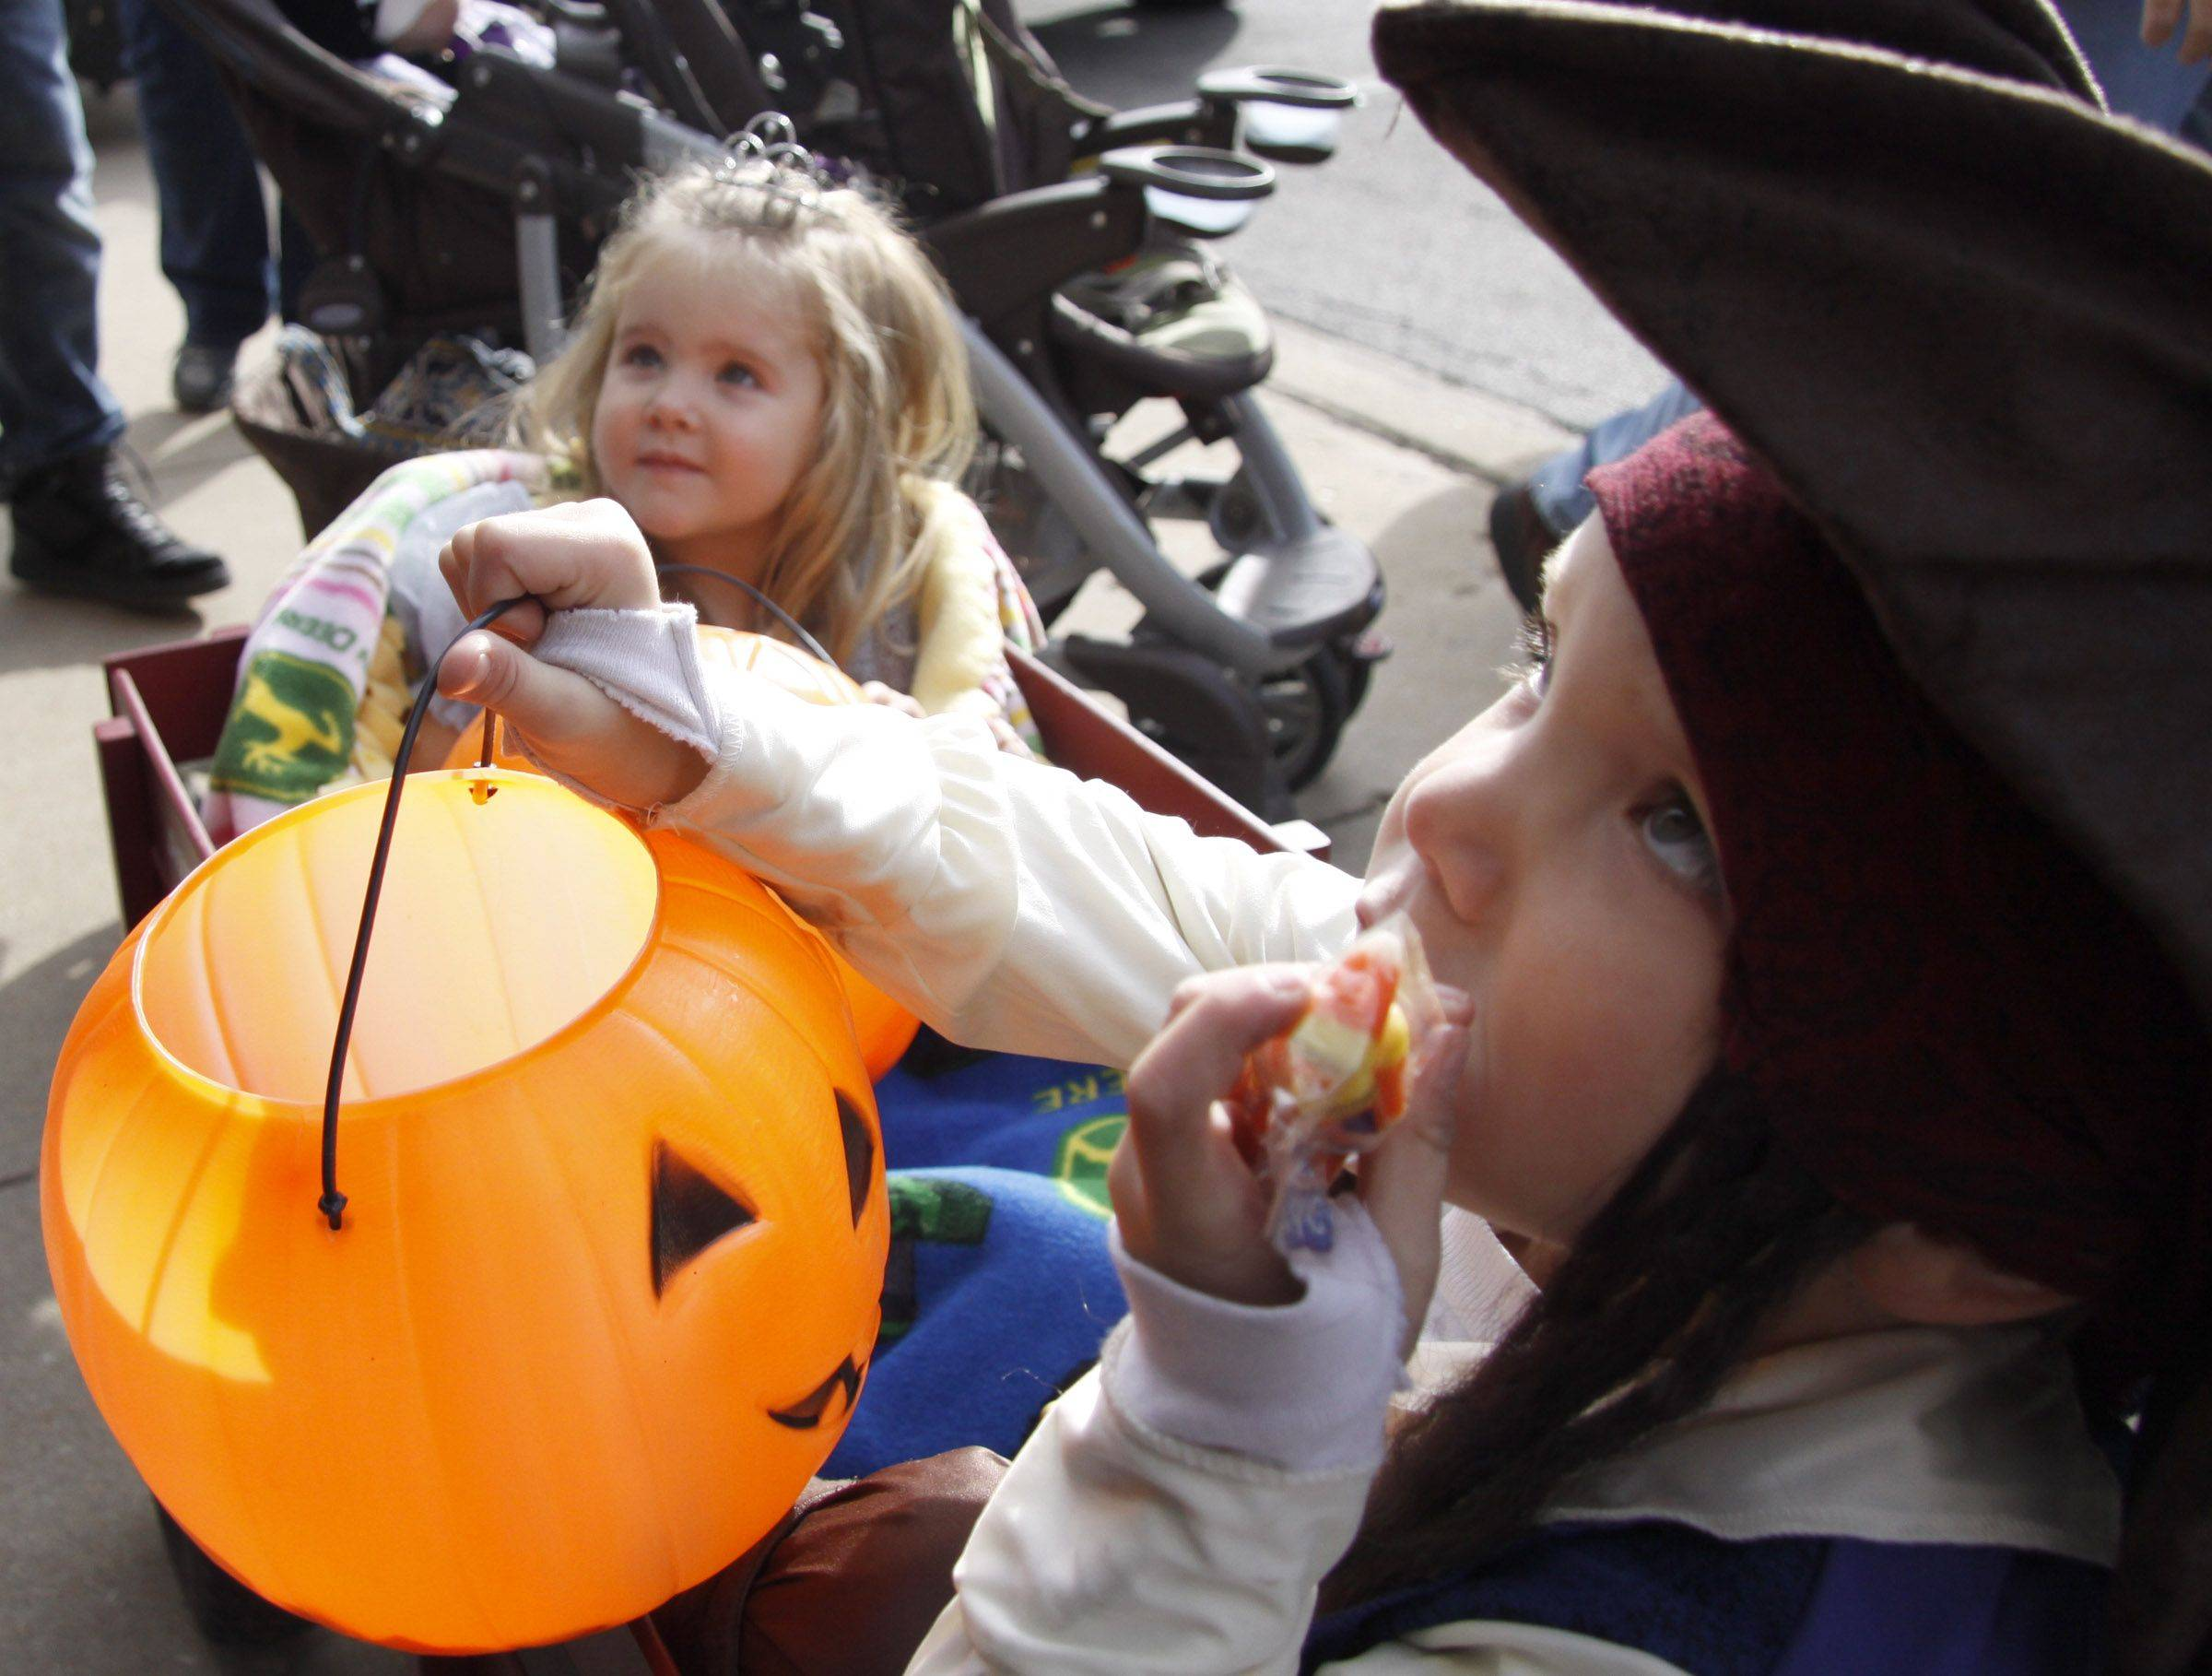 "Will Shasteen, 5, and his sister Lauren, 2, of Glen Ellyn wait to ask shop keepers for candy along the Kid's Halloween Parade route Saturday in Glen Ellyn. ""It's been going on for a long time, it's history,"" said Georgia Koch, executive director of the Chamber of Commerce in Glen Ellyn, said. ""Kids grew up doing this and probably are back bringing their own kids,"" Koch said."